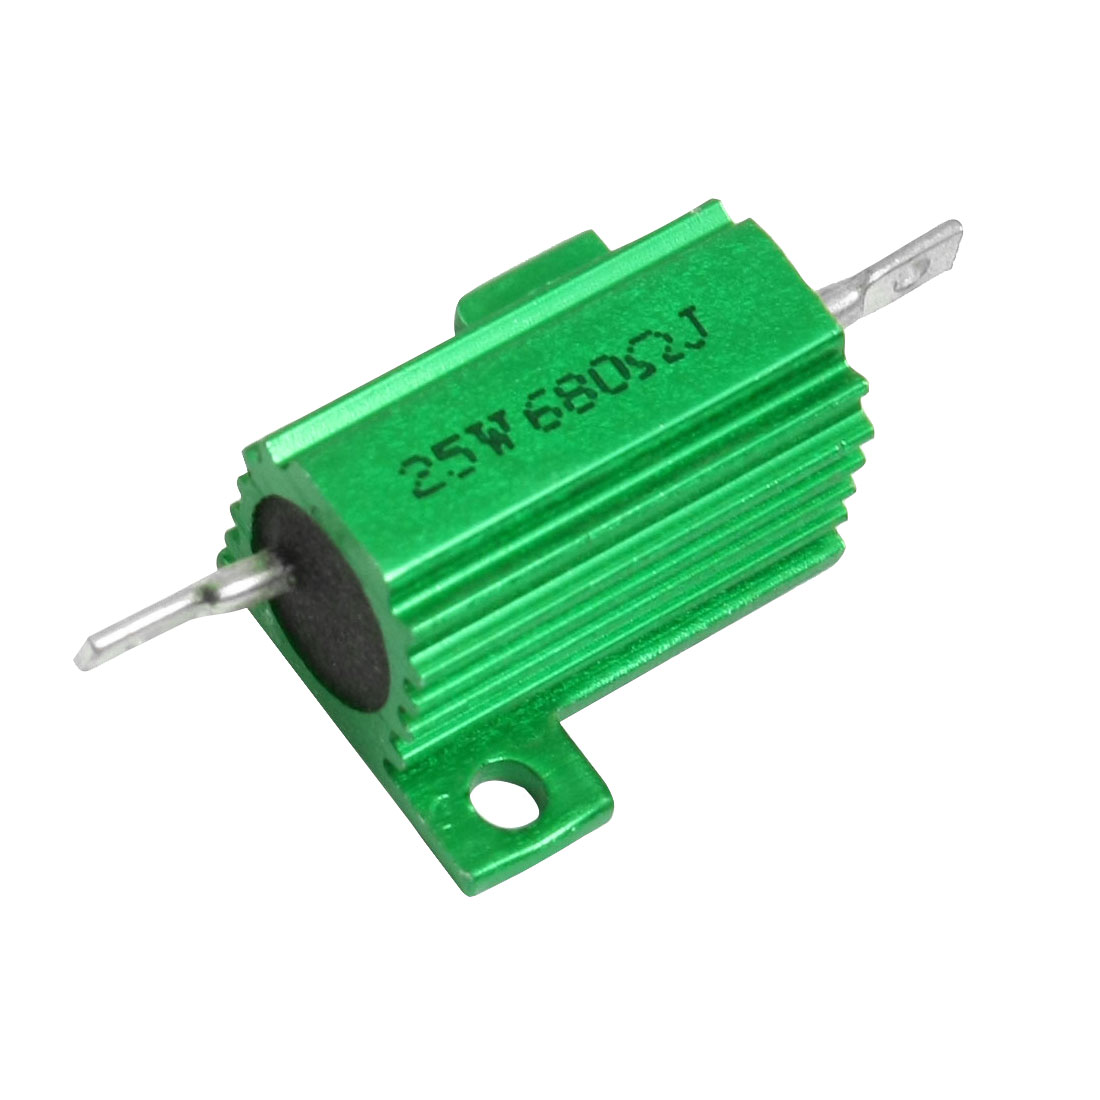 25W Power 680 Ohm 5% Chassis Mount Green Aluminium Clad Resistor